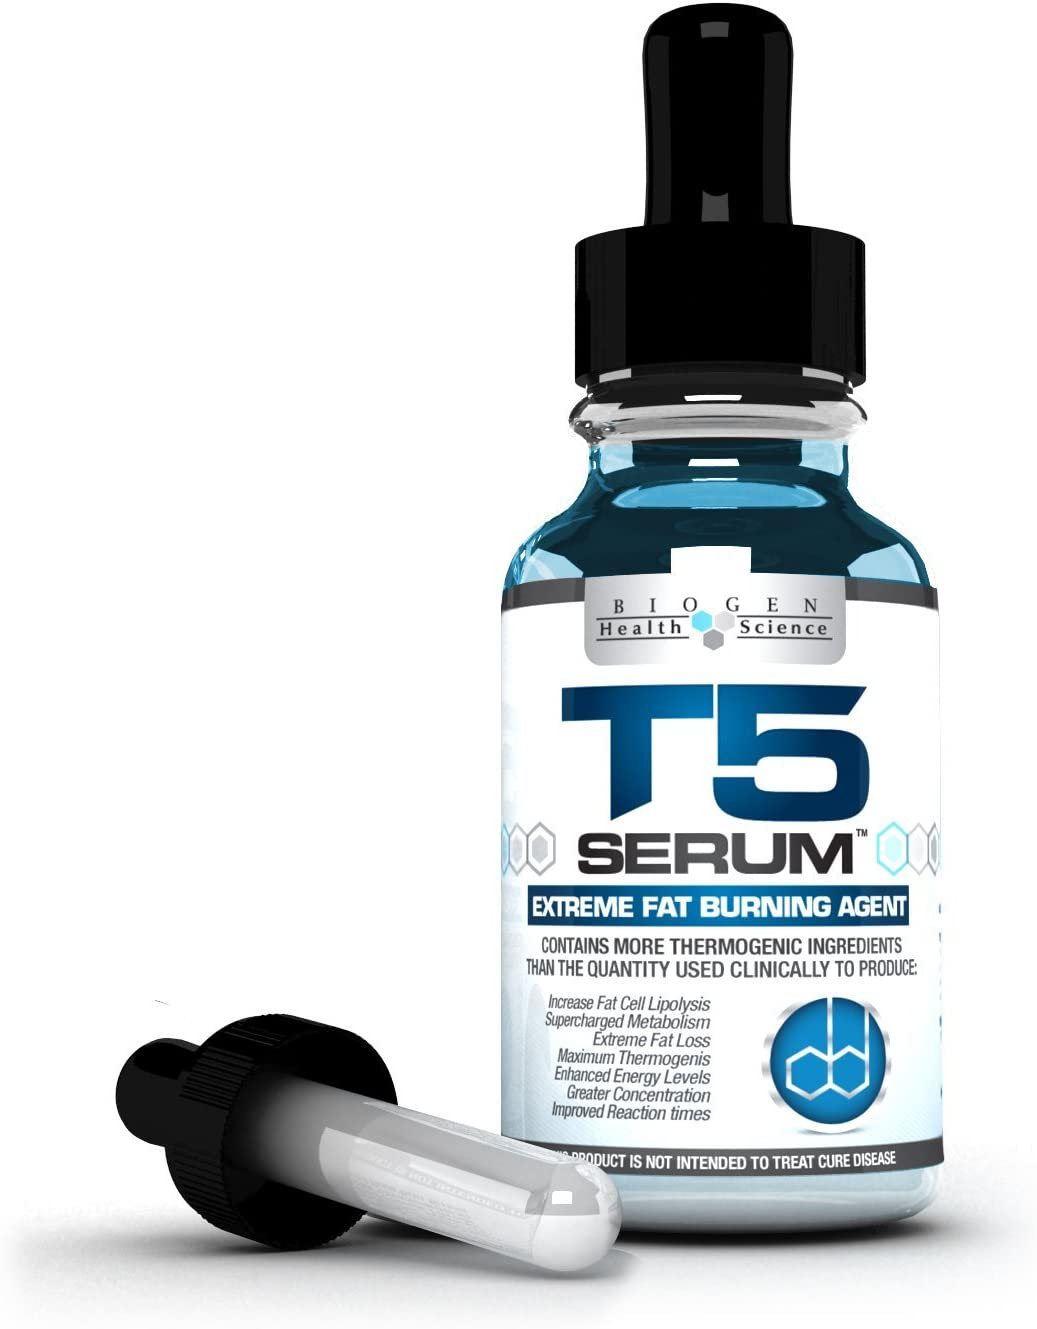 Biogen Health Science Biogen Health Science T5 Fat Burners Serum XT Maximum Strength Fast Acting